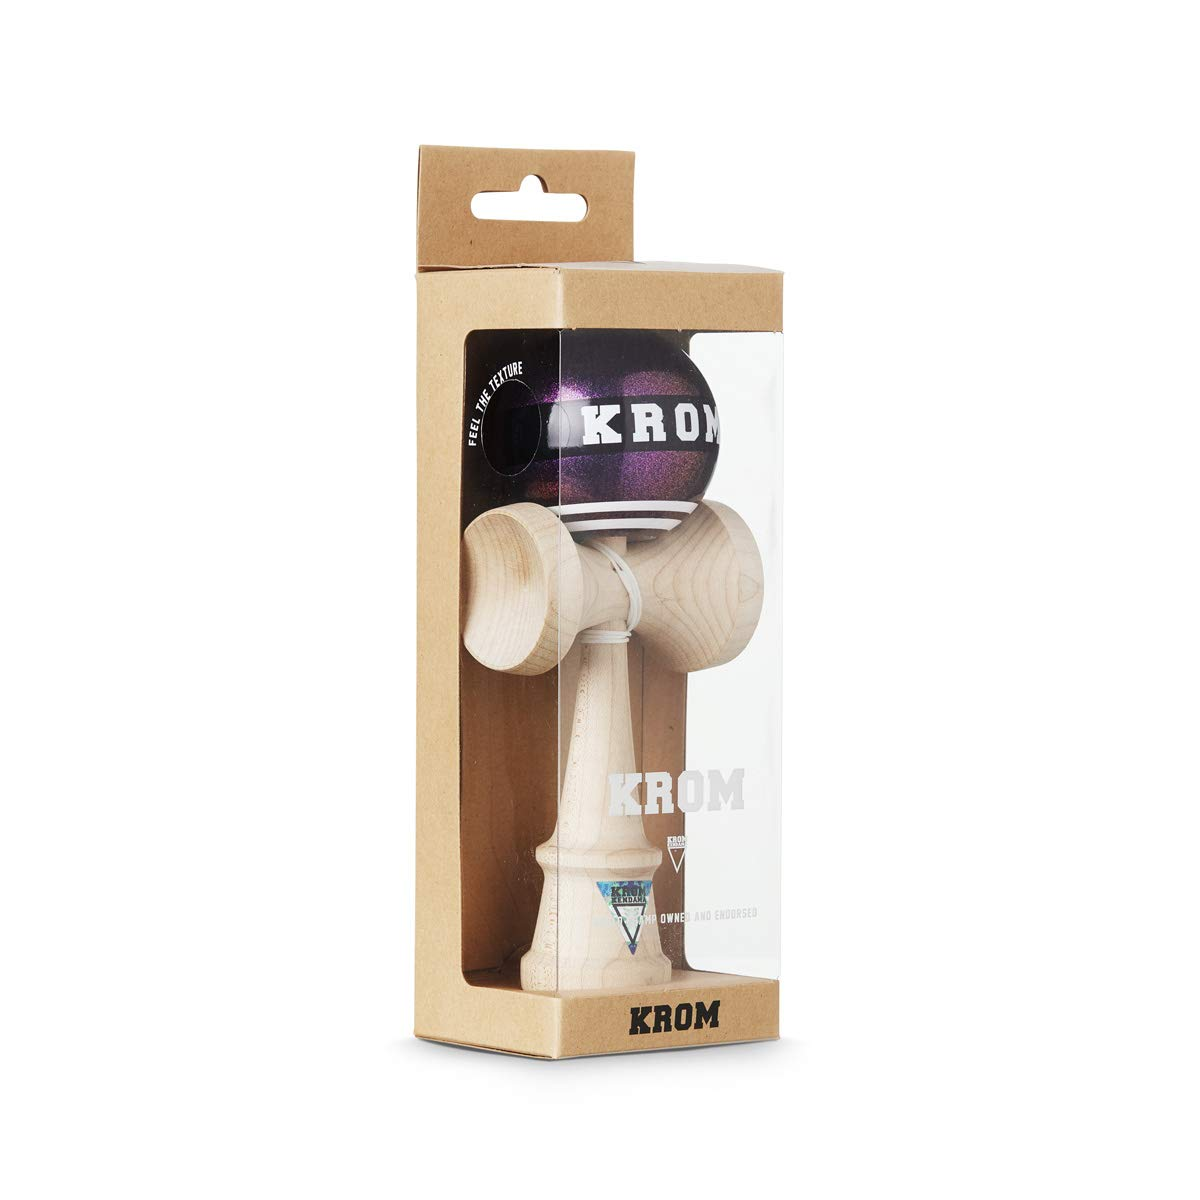 Smooth Texture and Flawless Balance Enhanced Cognitive Skills Krom Kendama Reflexes Kendama Pro Model for Beginners and Experts Strogo Blue-Collar and Creativity Improved Balance